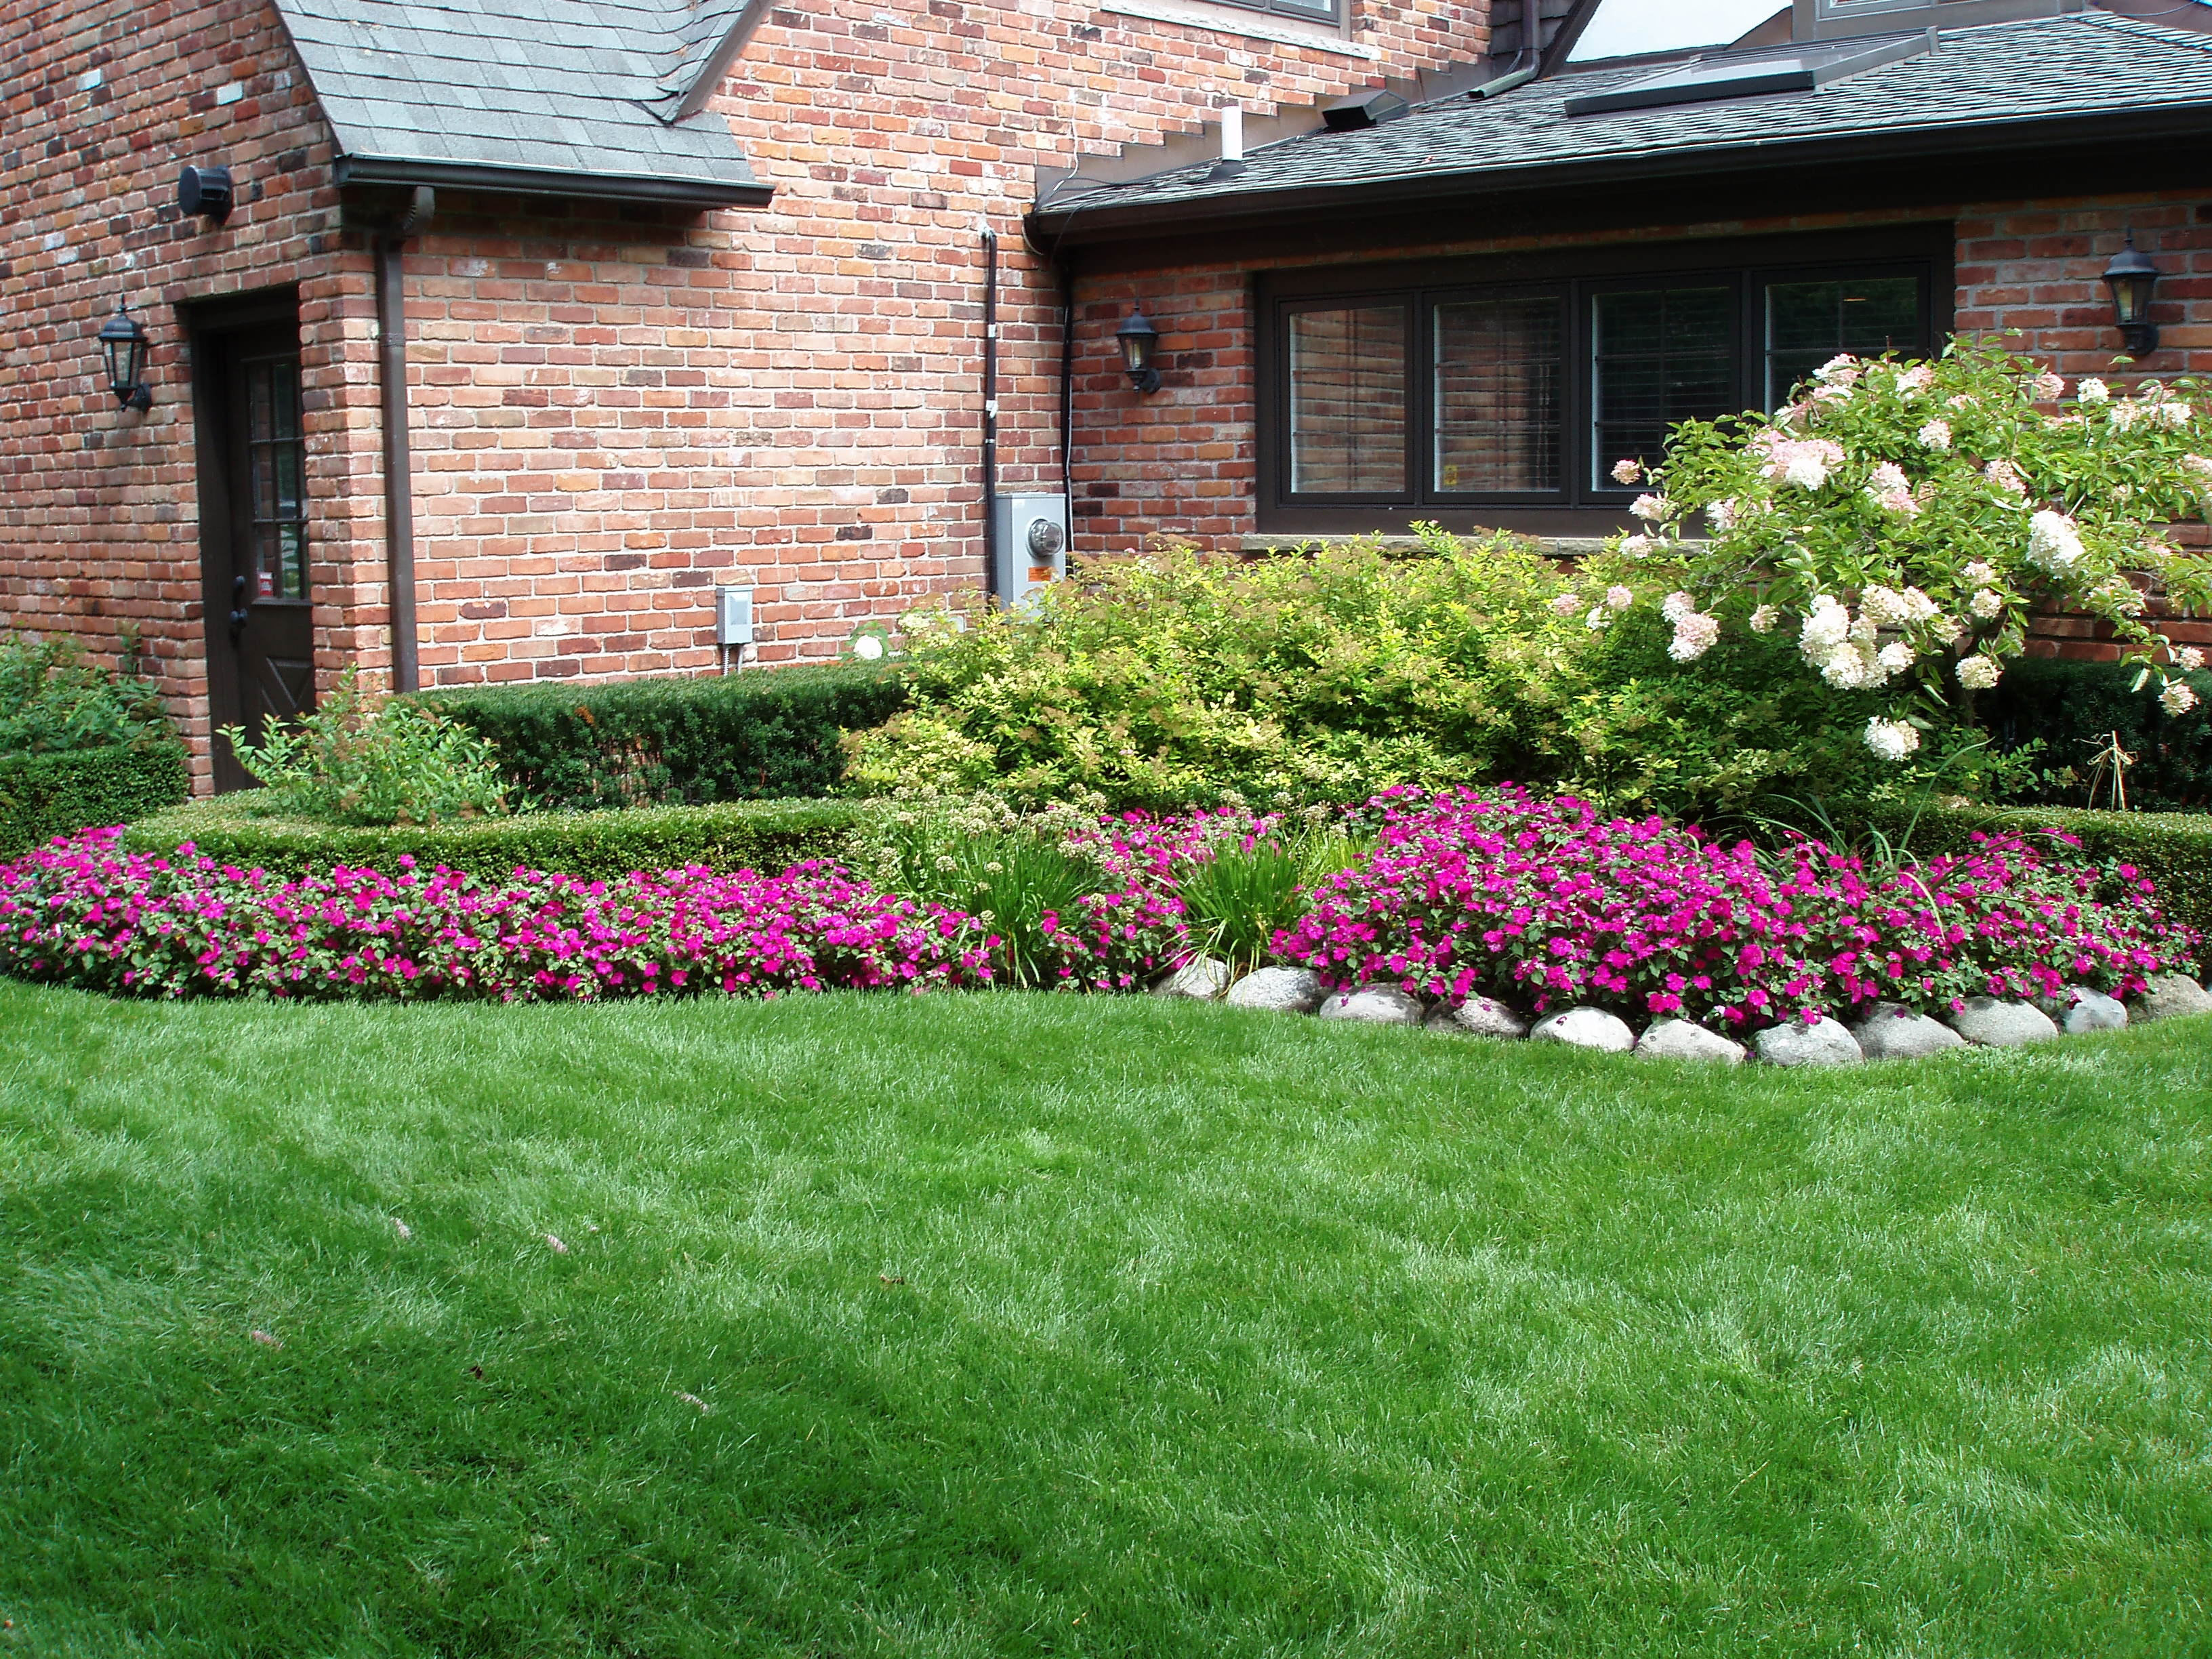 Perennials total lawn care inc full lawn maintenance for Home garden pictures